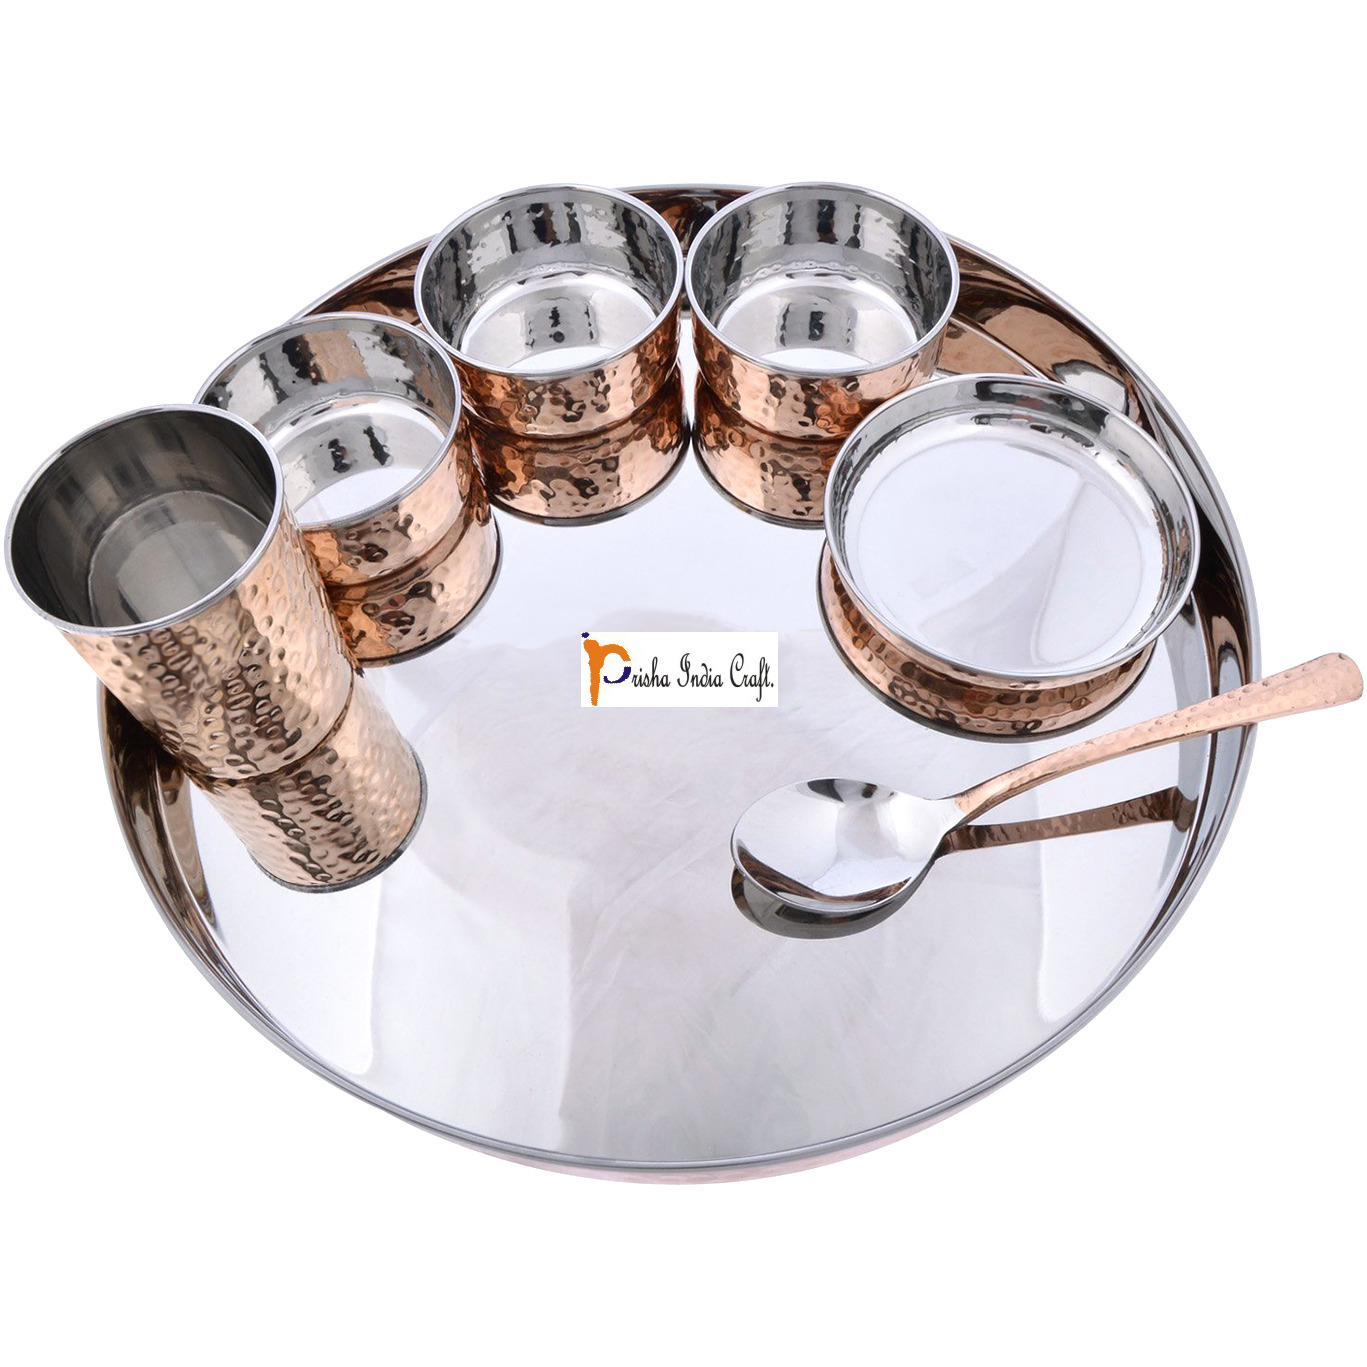 Prisha India Craft B. Set of 2 Dinnerware Traditional Stainless Steel Copper Dinner Set of Thali Plate, Bowls, Glass and Spoon, Dia 13  With 1 Luxury Style Stainless Steel Copper Pitcher Jug - Christmas Gift